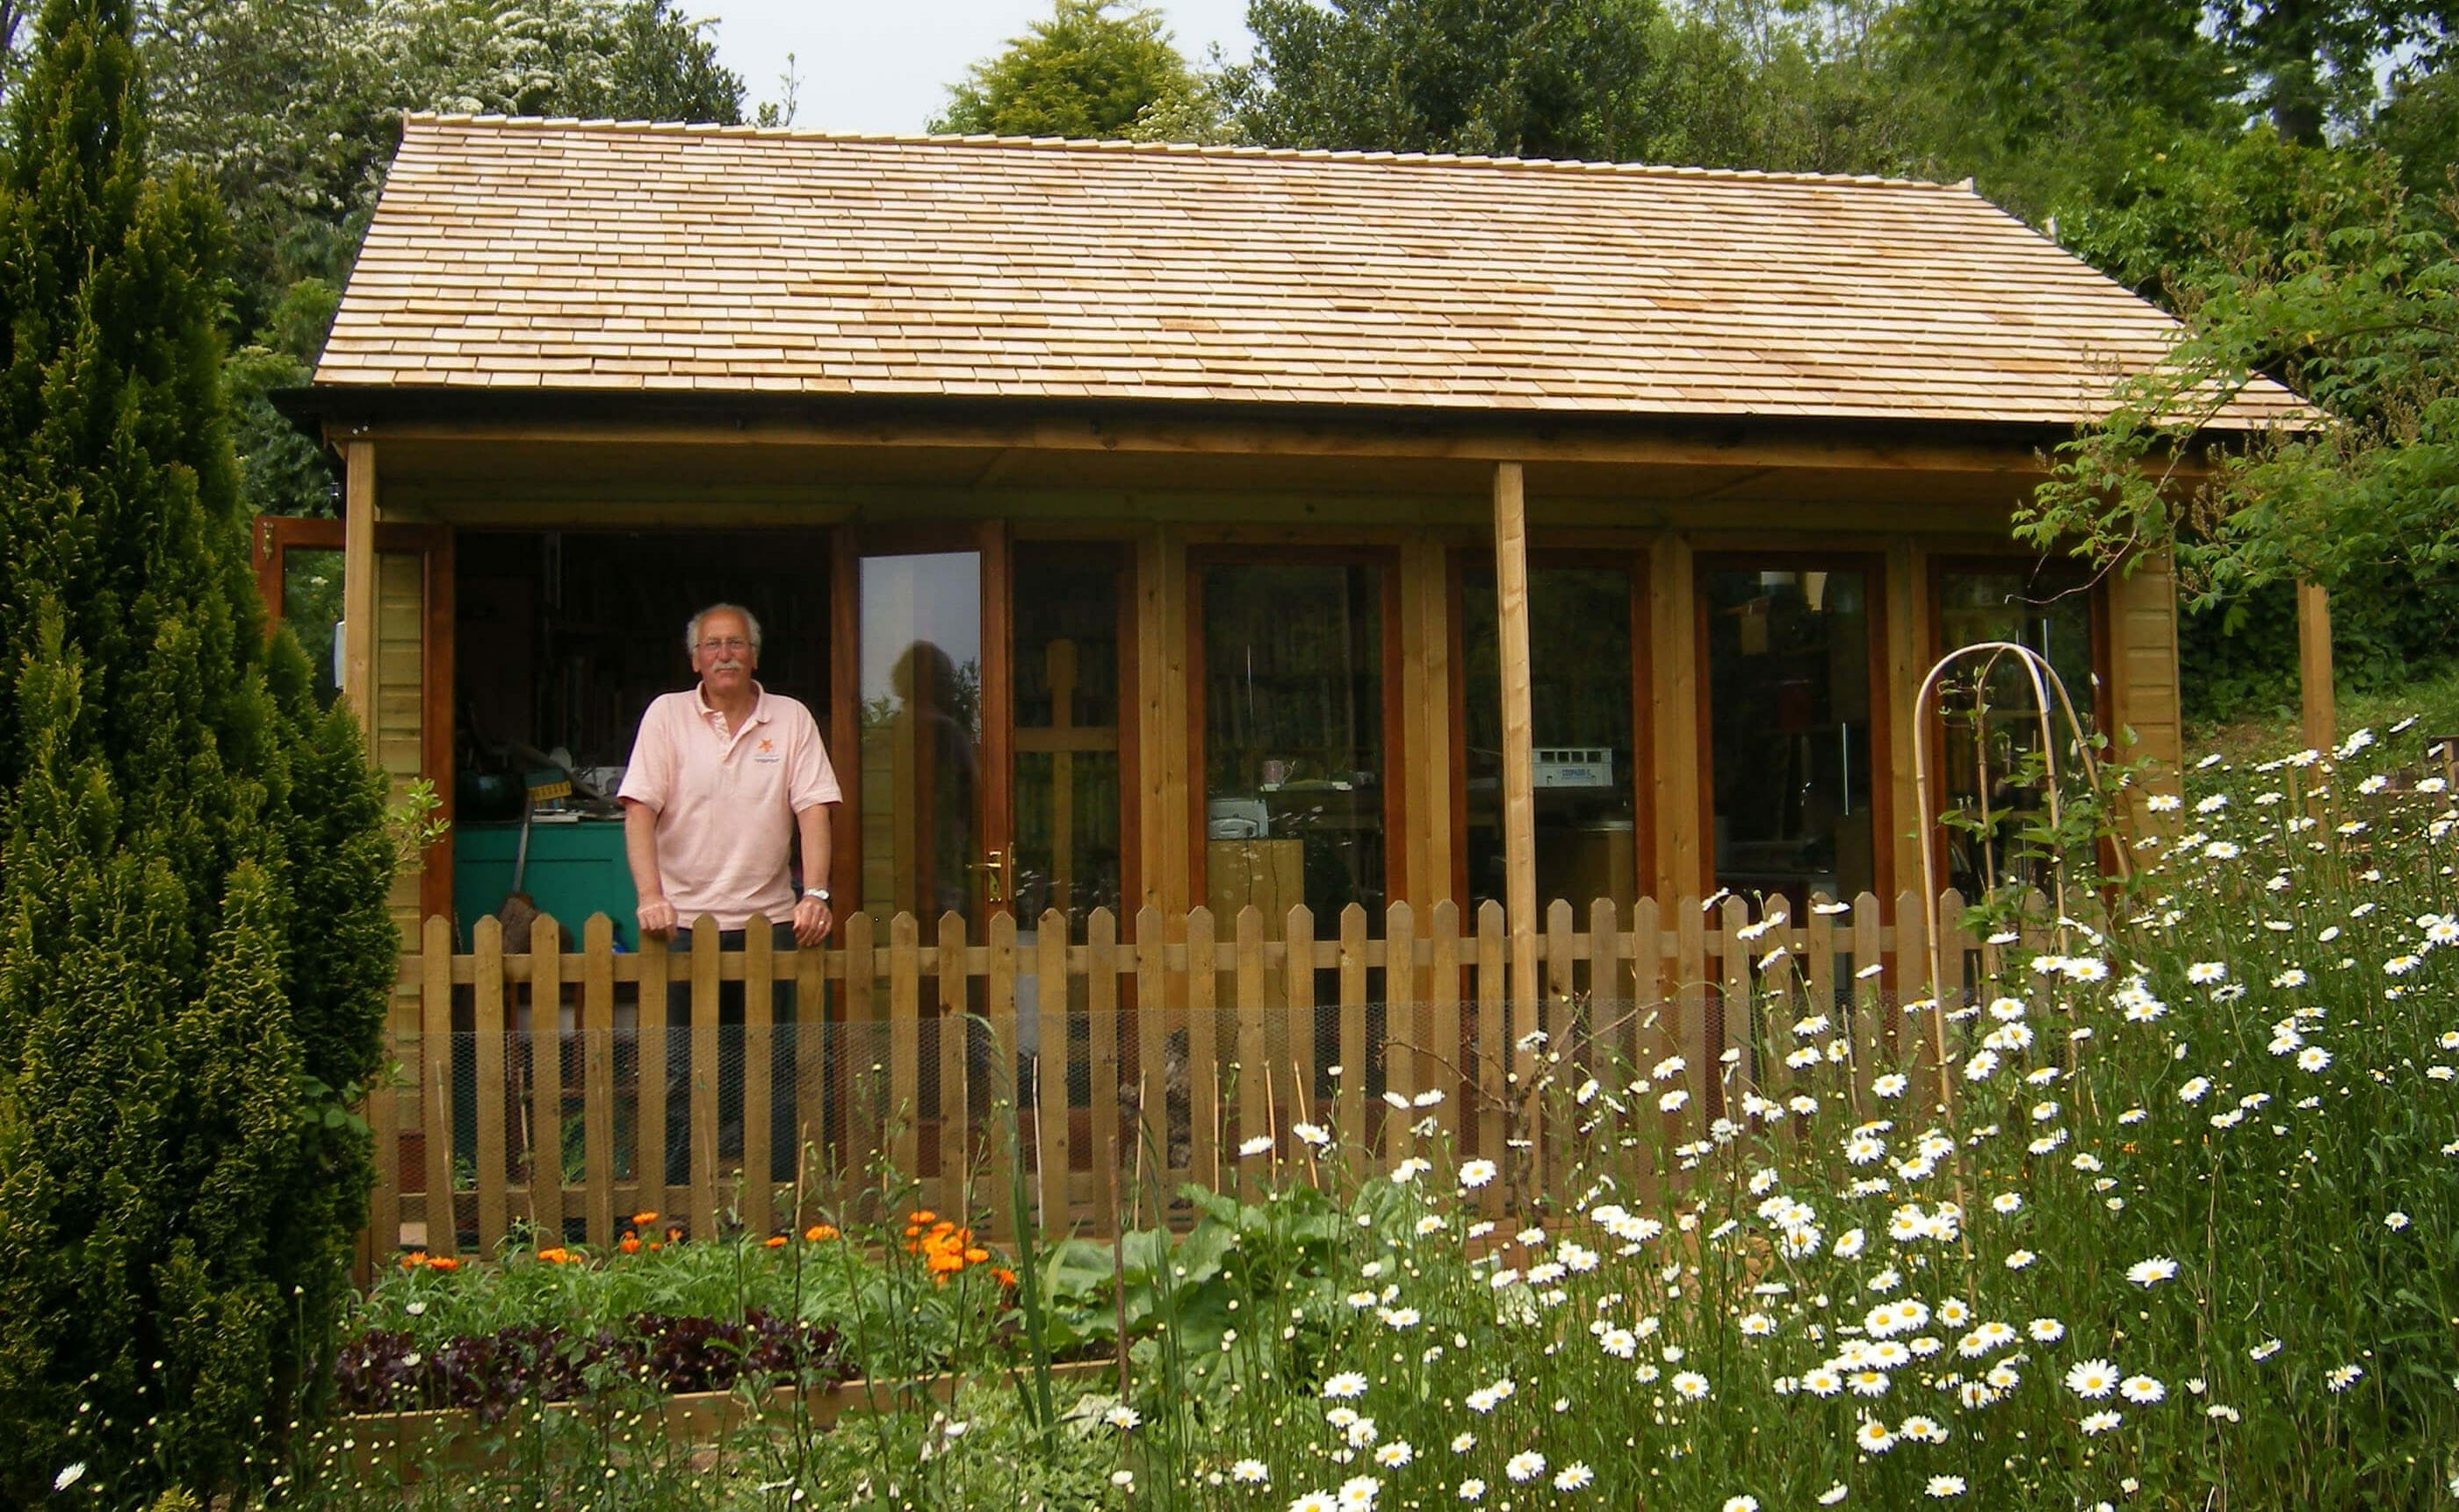 Garden room with covered porch